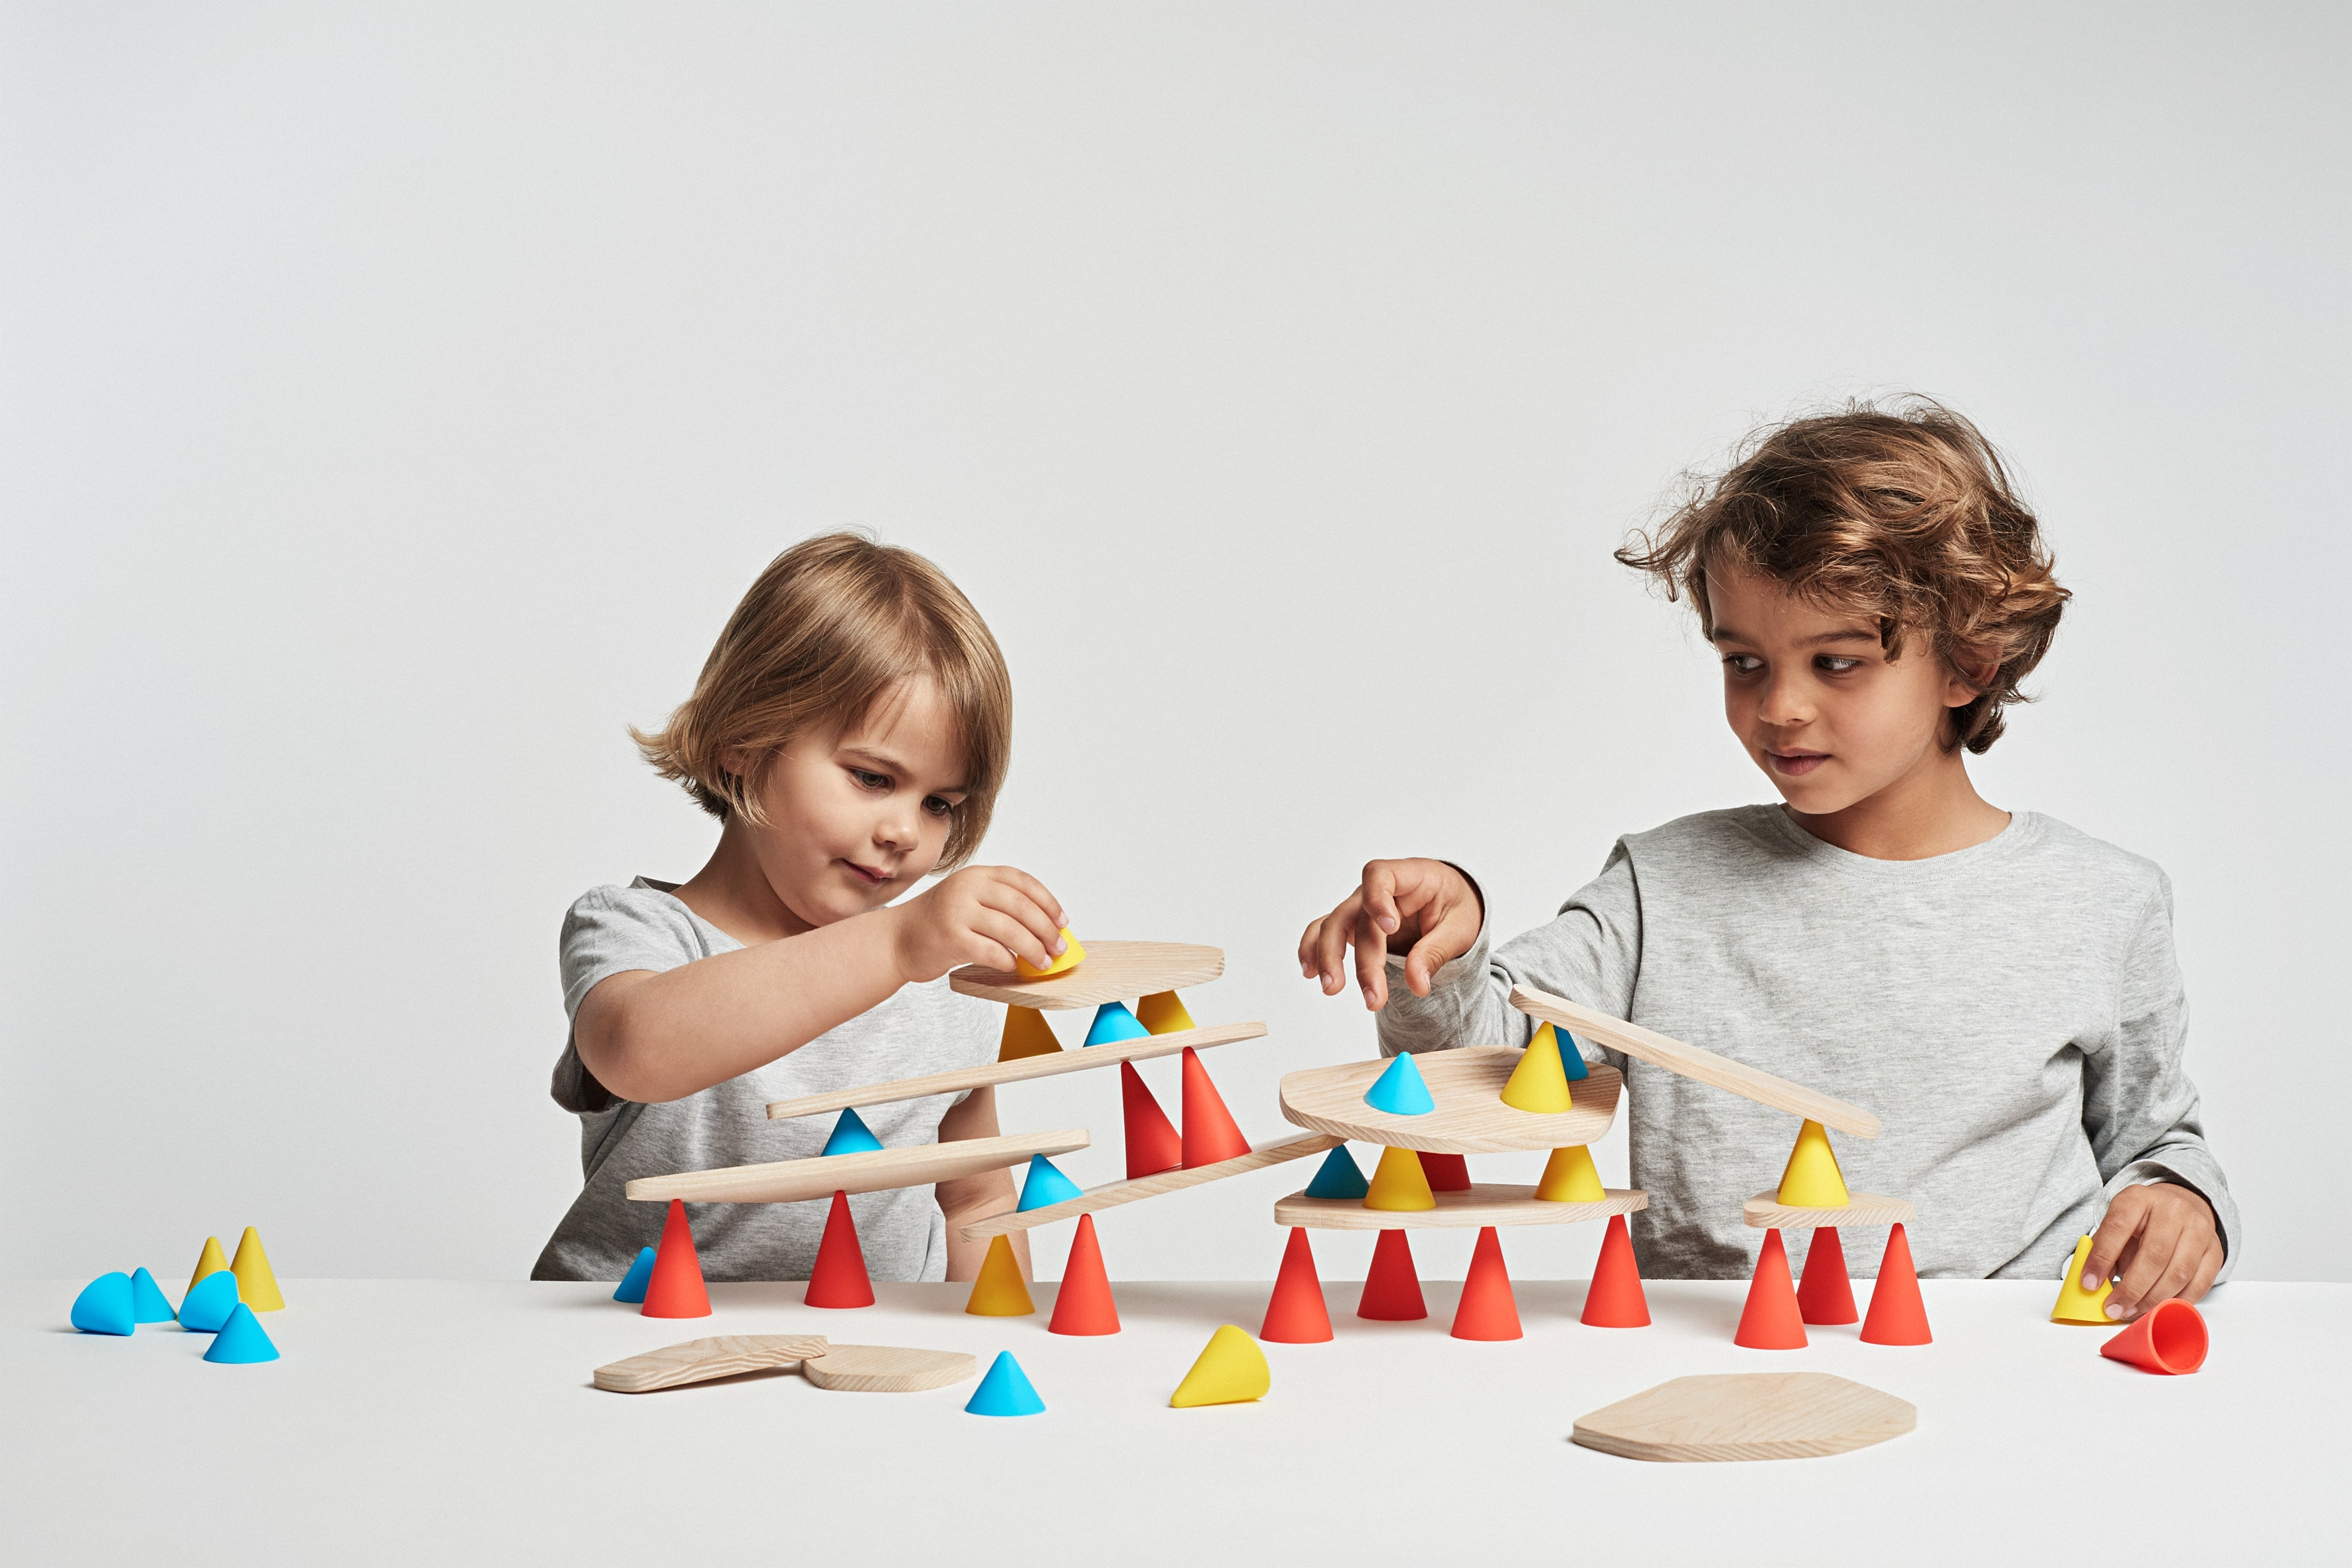 PIKS: DEVELOP CHILDREN'S CONCENTRATION WHILE HAVING FUN